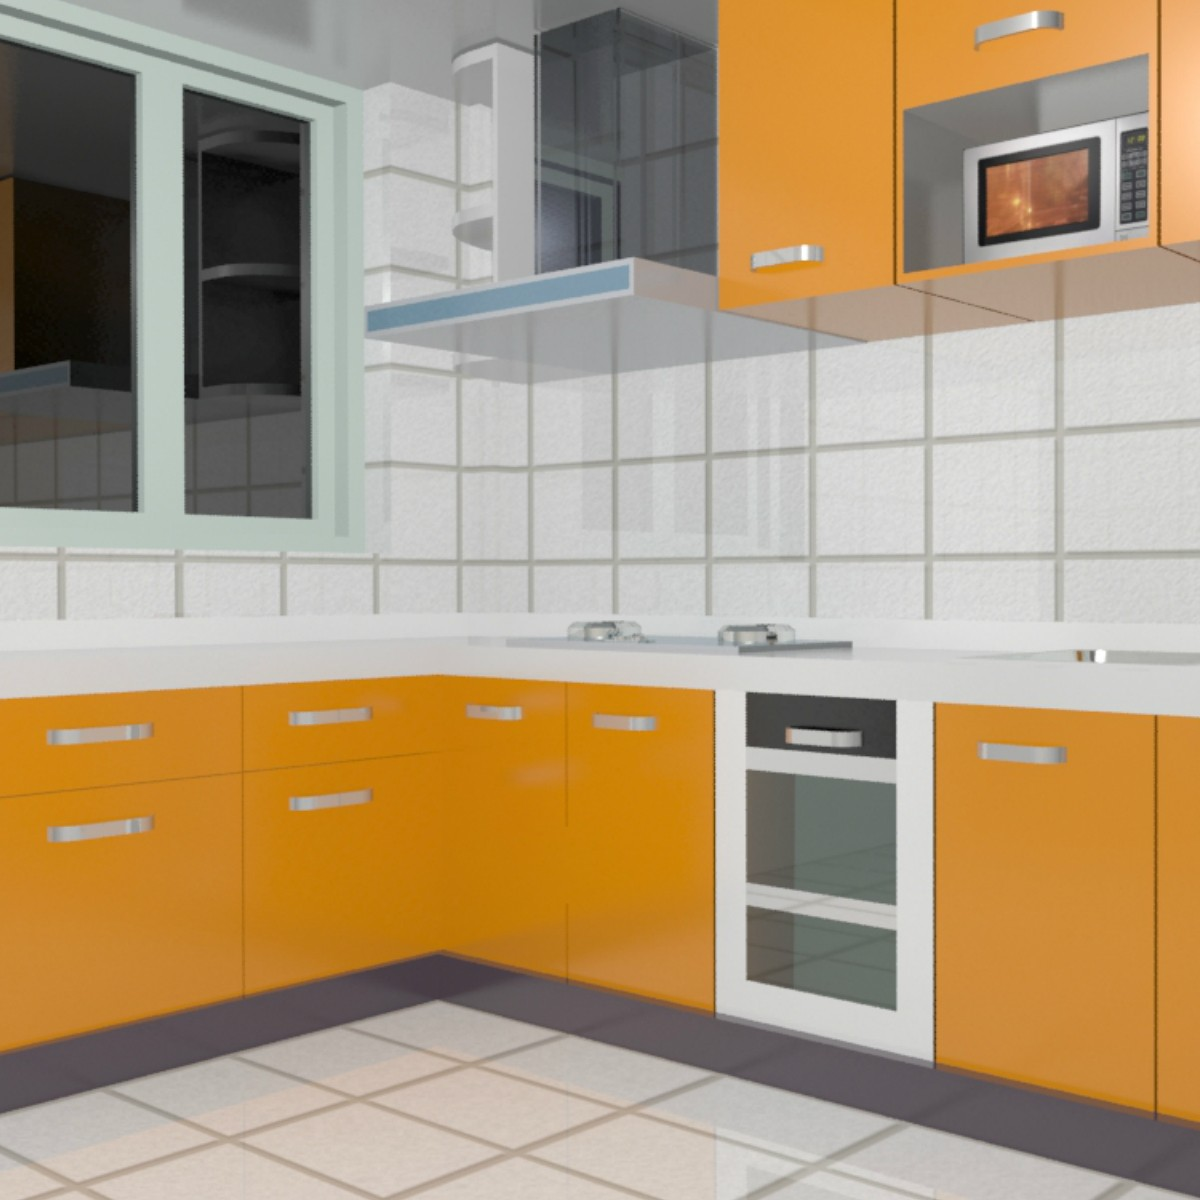 Foundation dezin decor 3d kitchen model design for Kitchen cabinets models